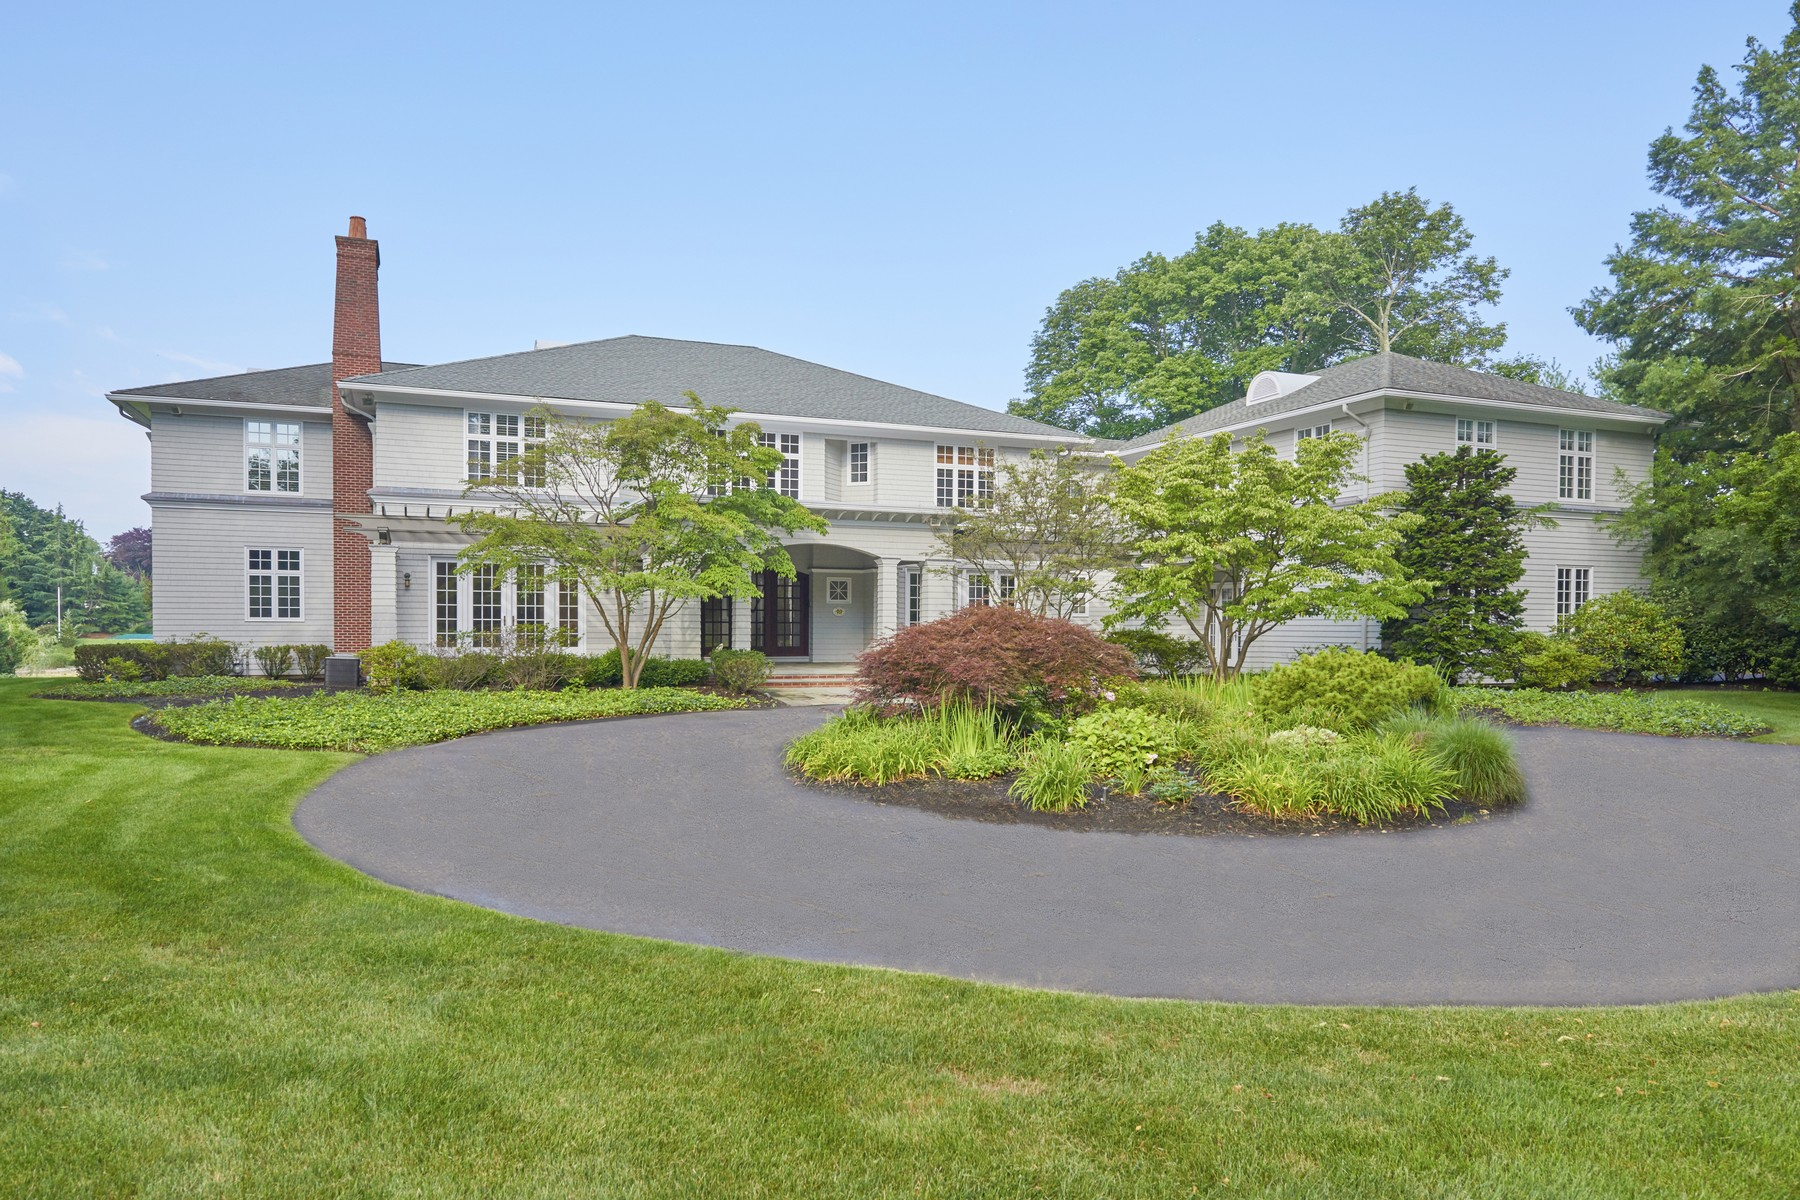 Single Family Home for Sale at Trancending the Ordinary 8 Buttonwood Lane Rumson, New Jersey 07760 United States